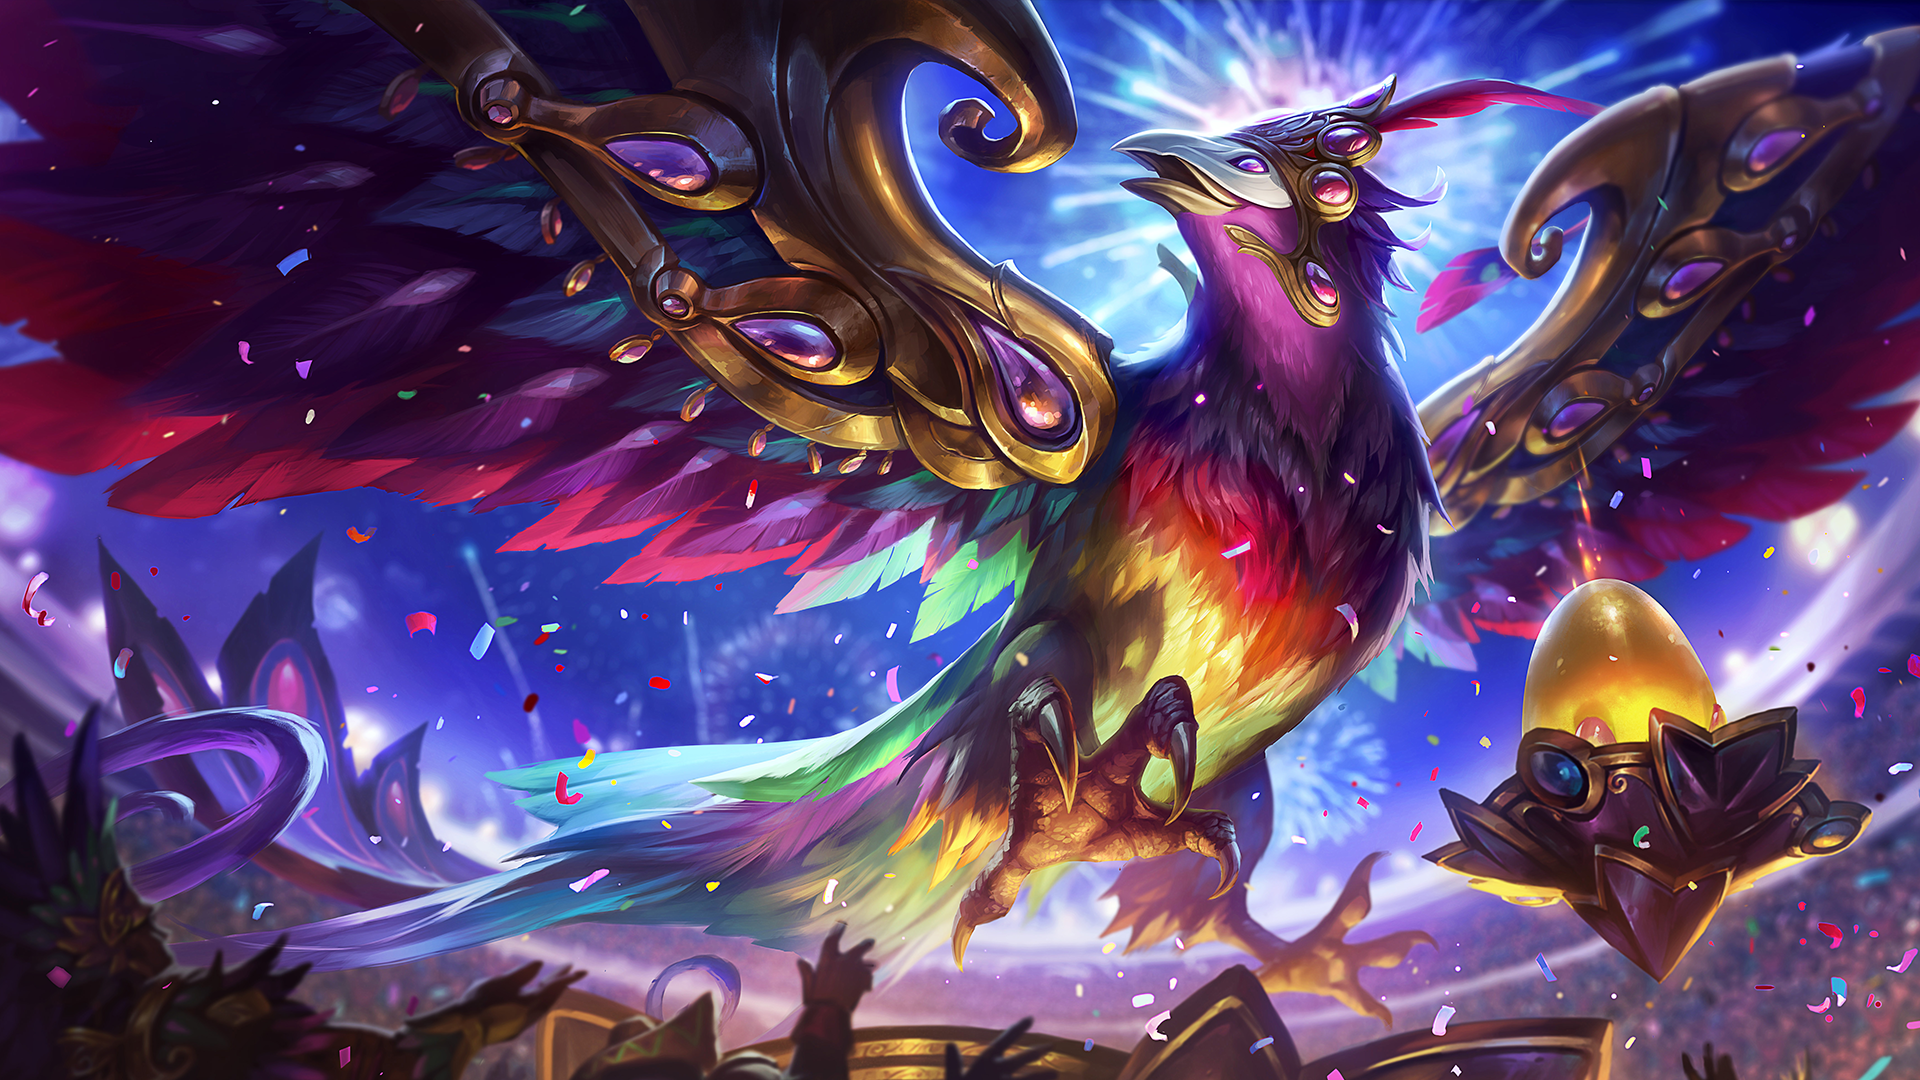 Anivia Carnaval Scaled Down